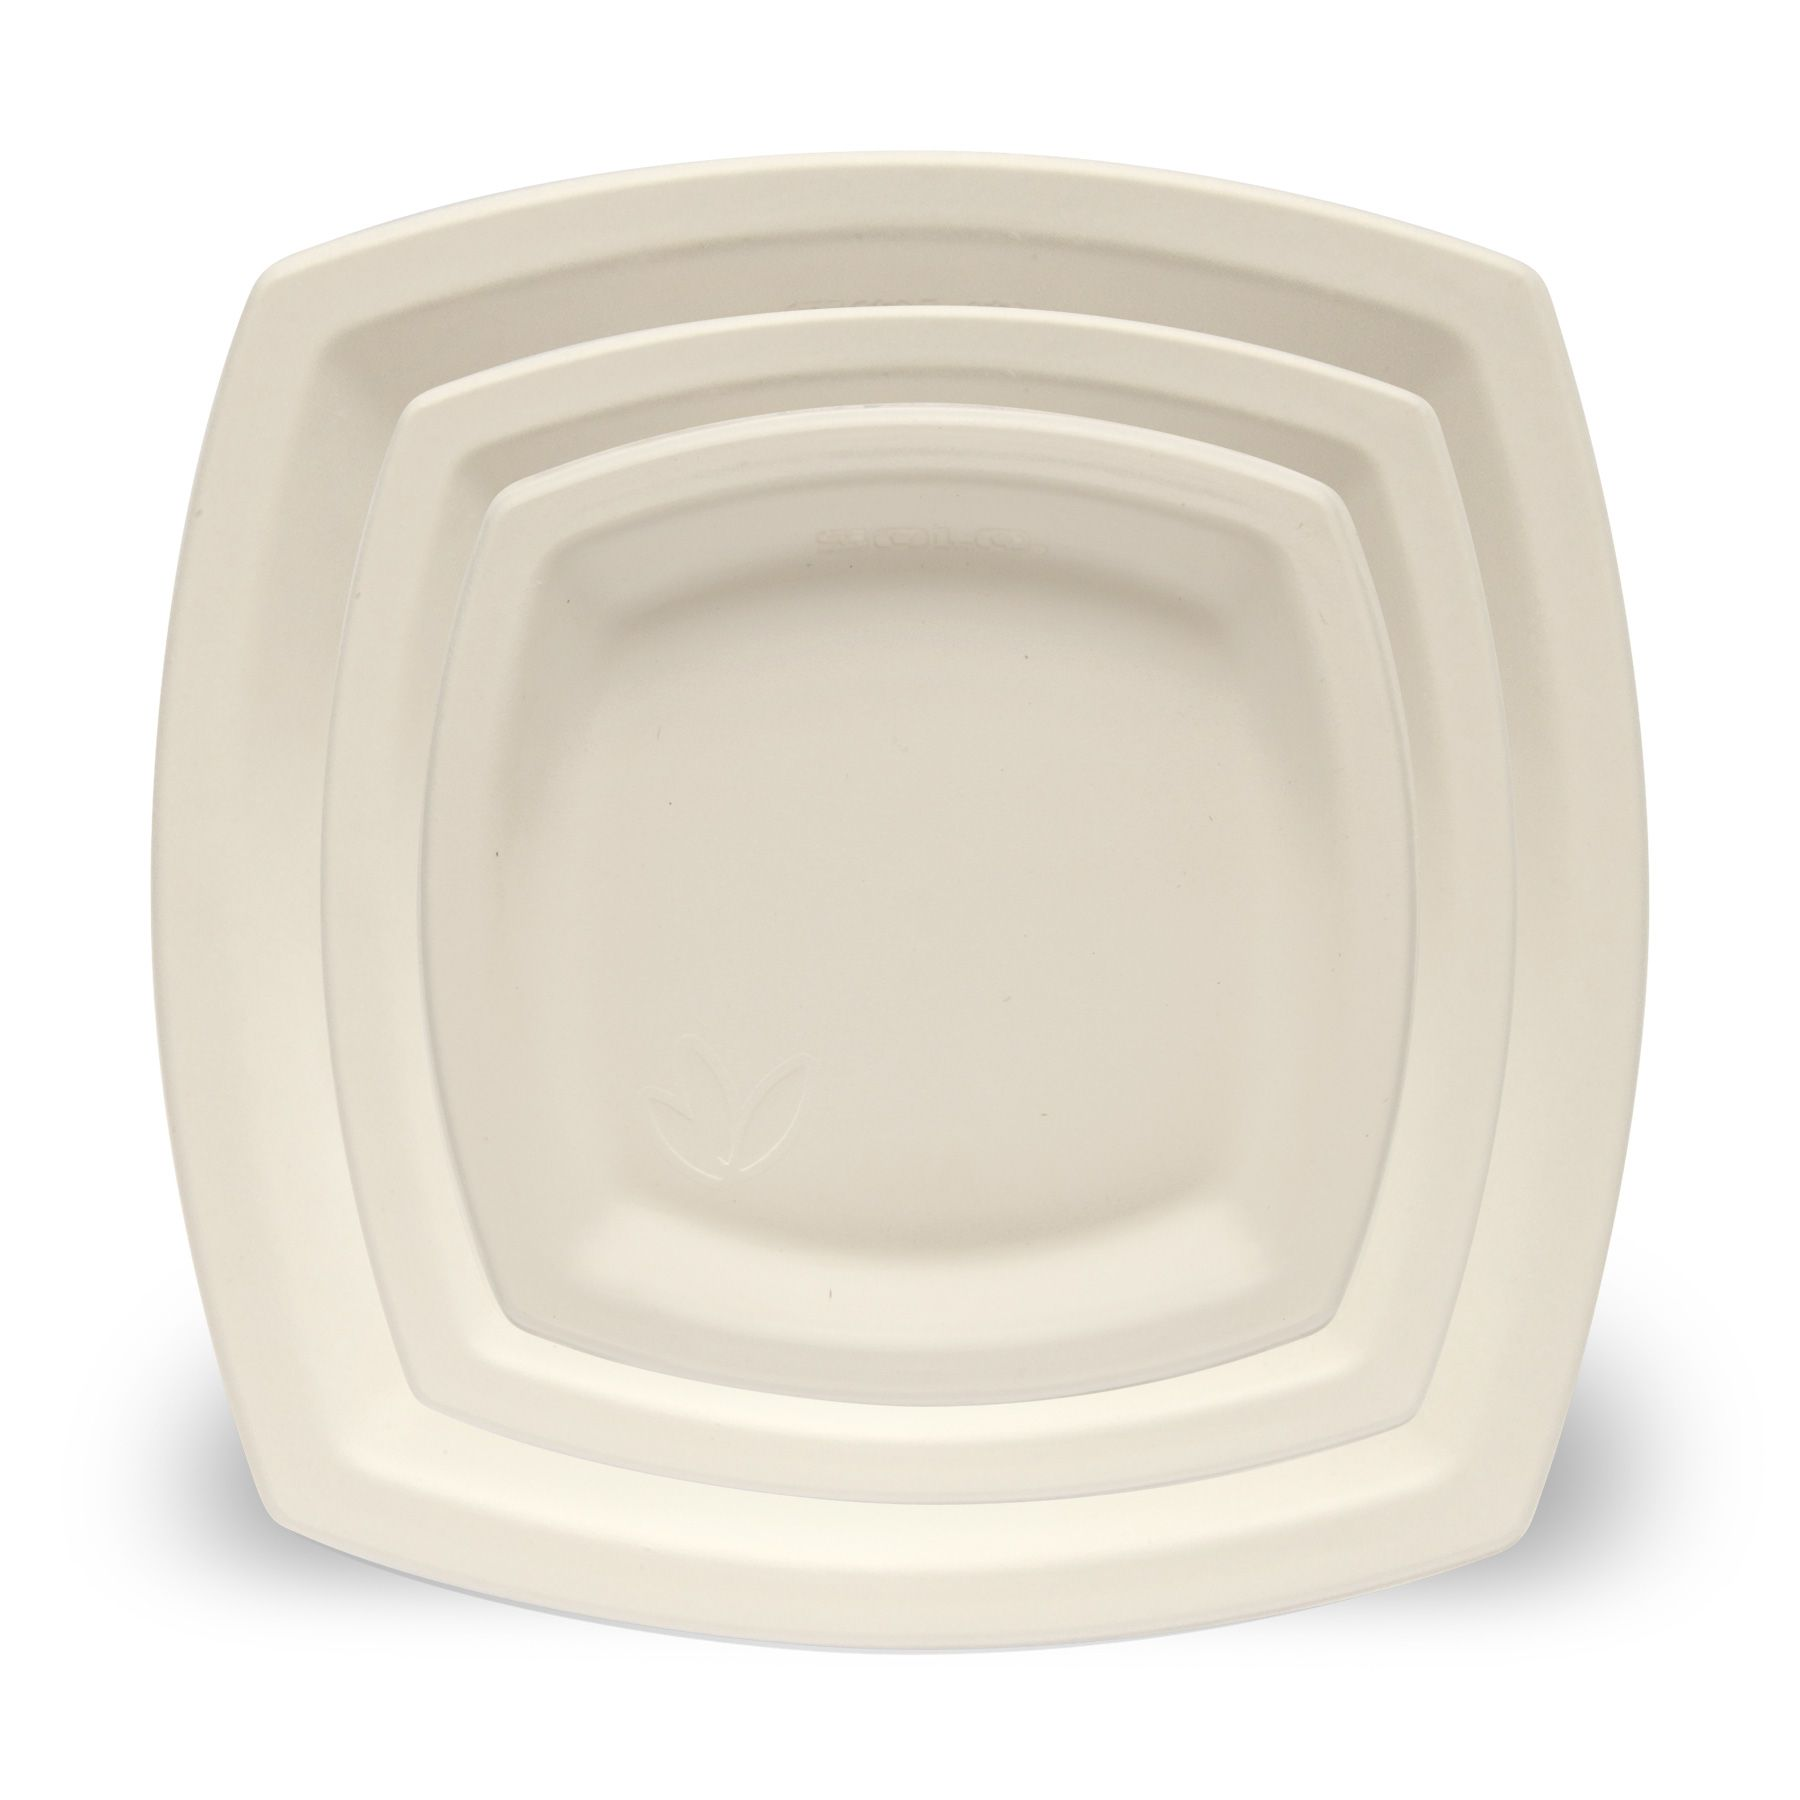 sc 1 st  Good Housekeeping & Eco Freindly Plates - Best Compostable and Reusable Plates